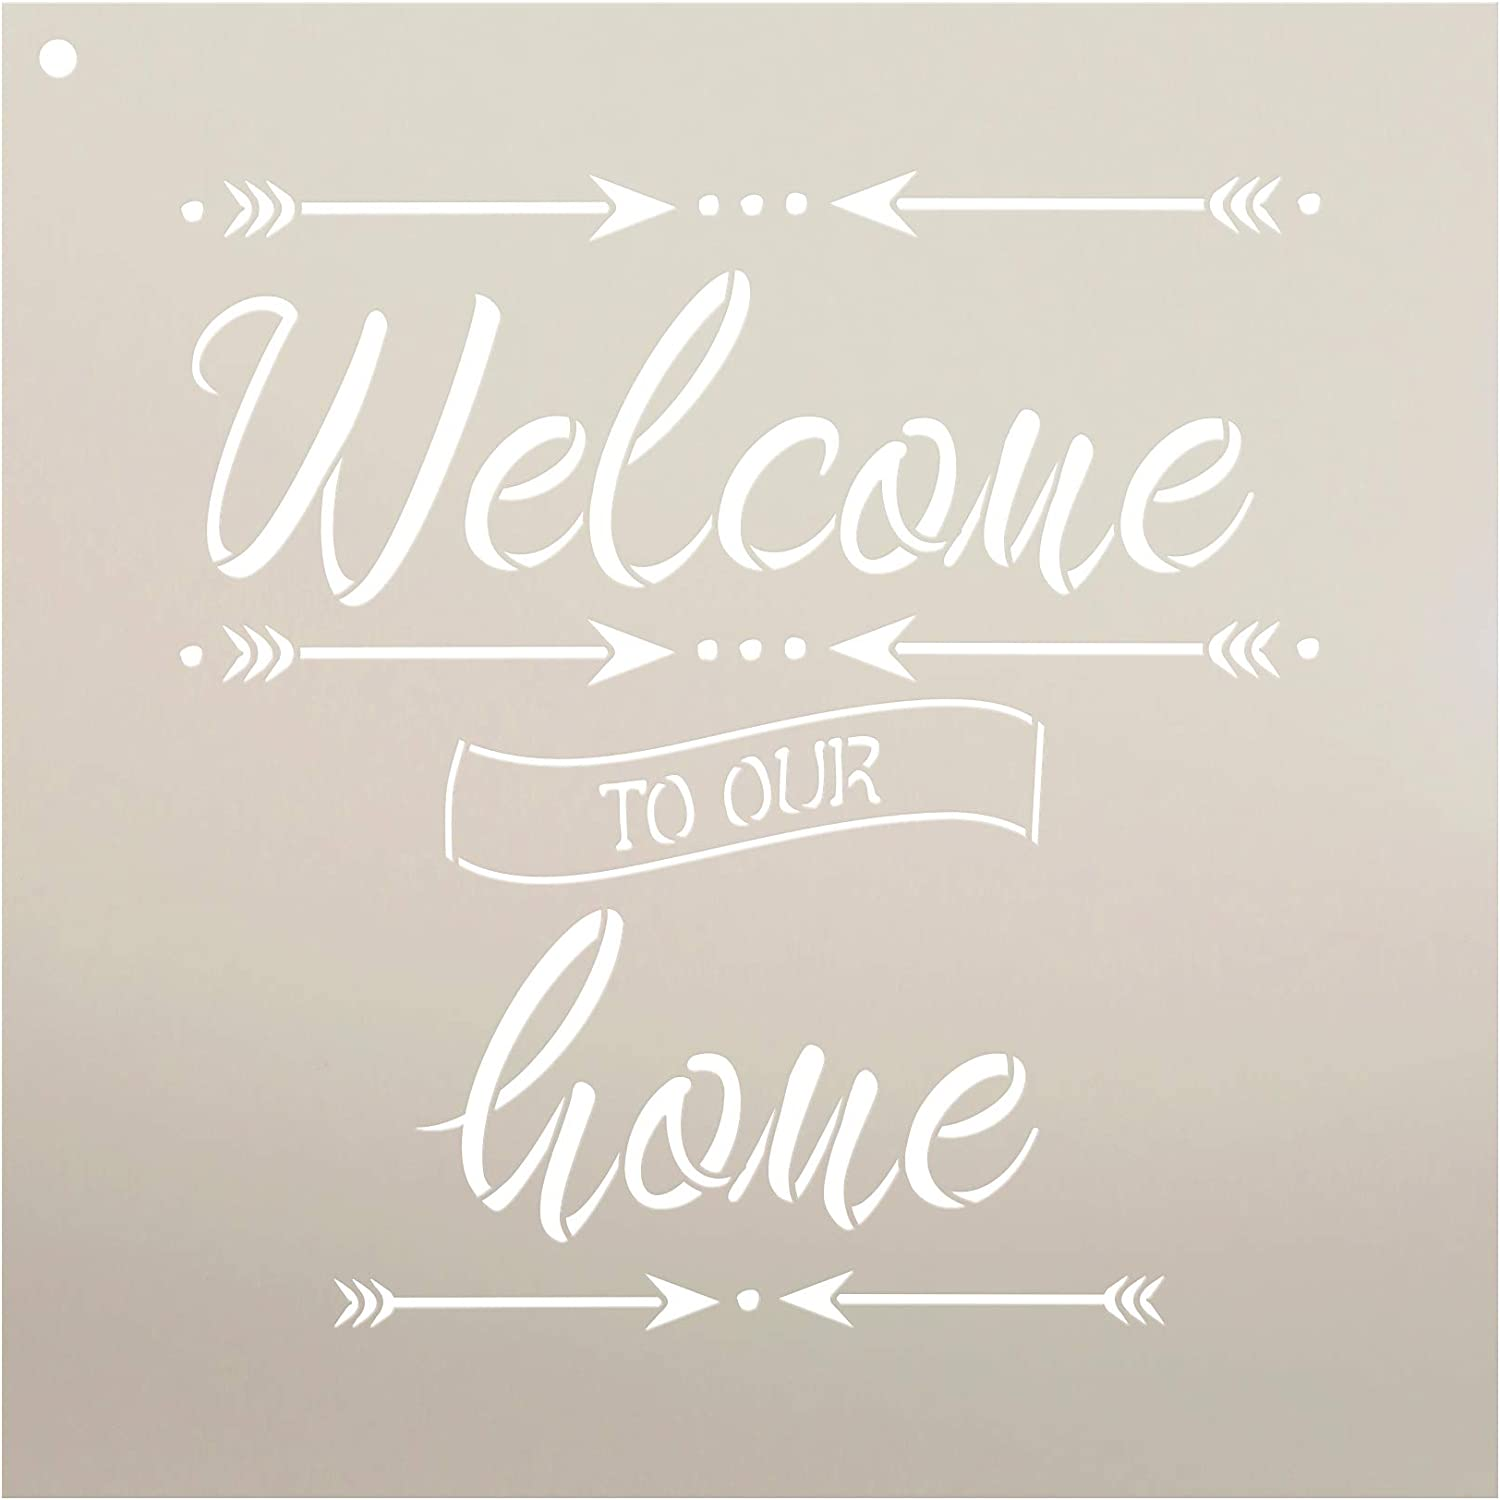 "Welcome to Our Home with Arrows Stencil by StudioR12 | Reusable Mylar Template | Use to Paint Wood Signs - Pallets - Pillows - Walls - DIY Home Decor - Select Size (10"" x 10"")"